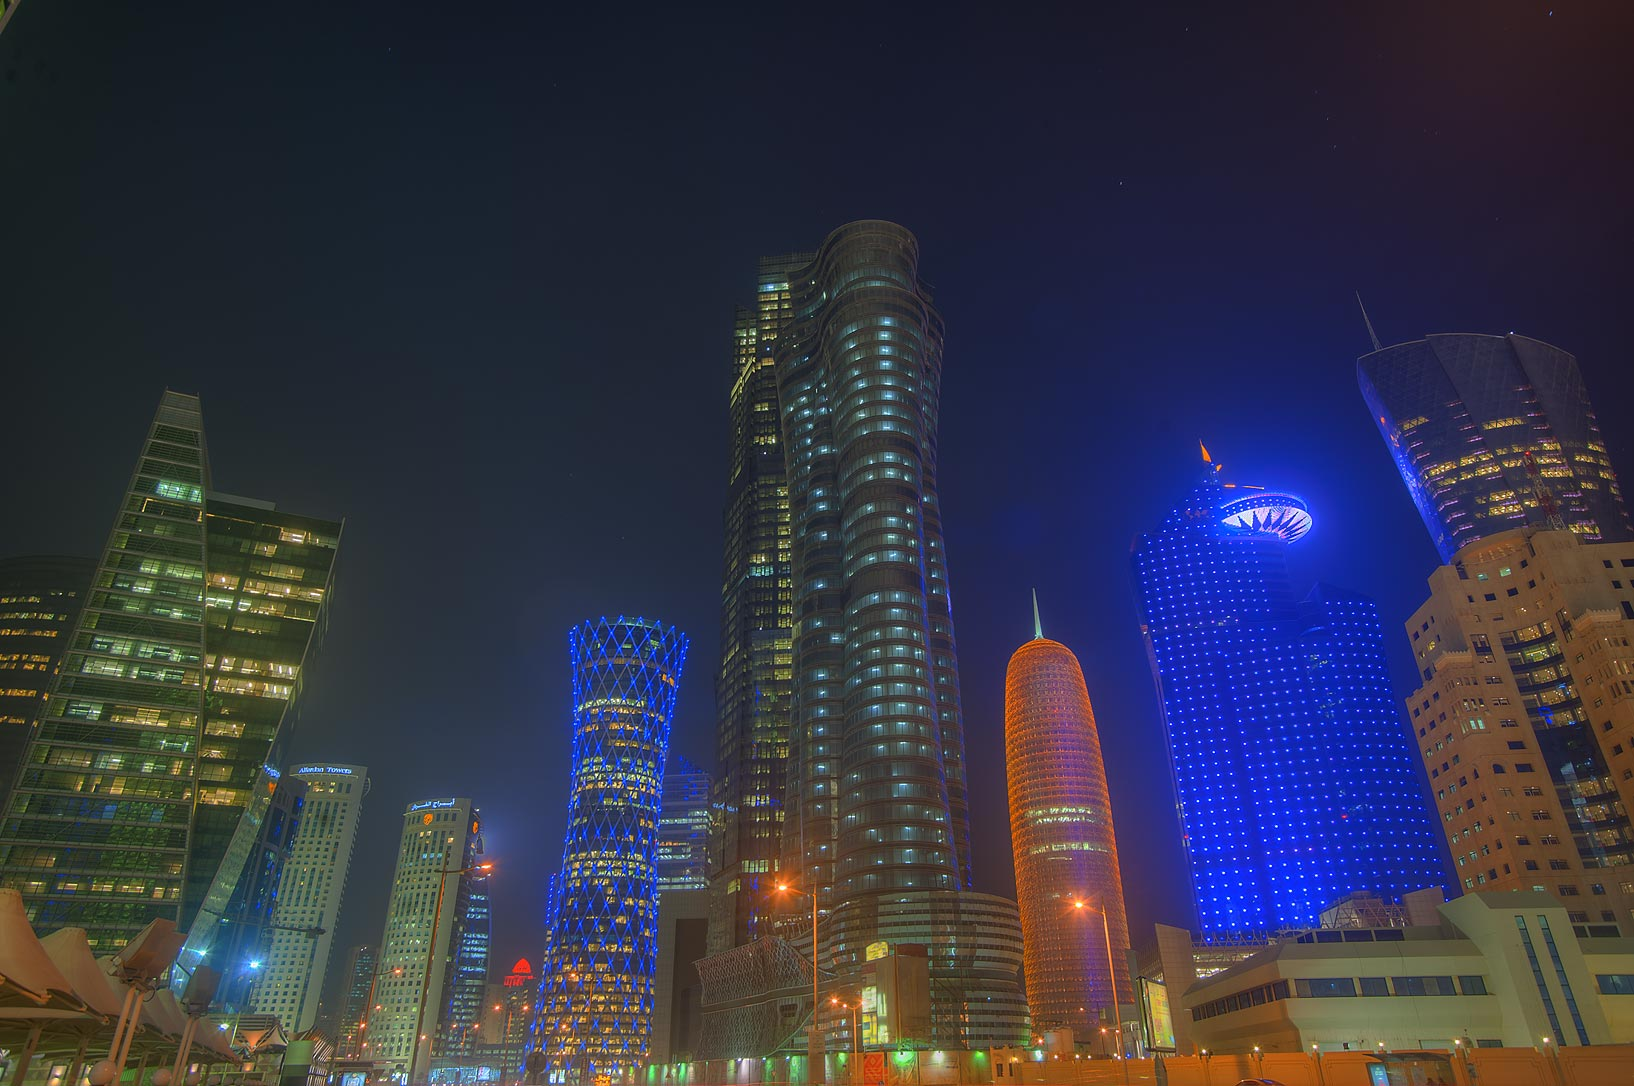 Majlis Al Taawon St. in West Bay at evening. Doha, Qatar